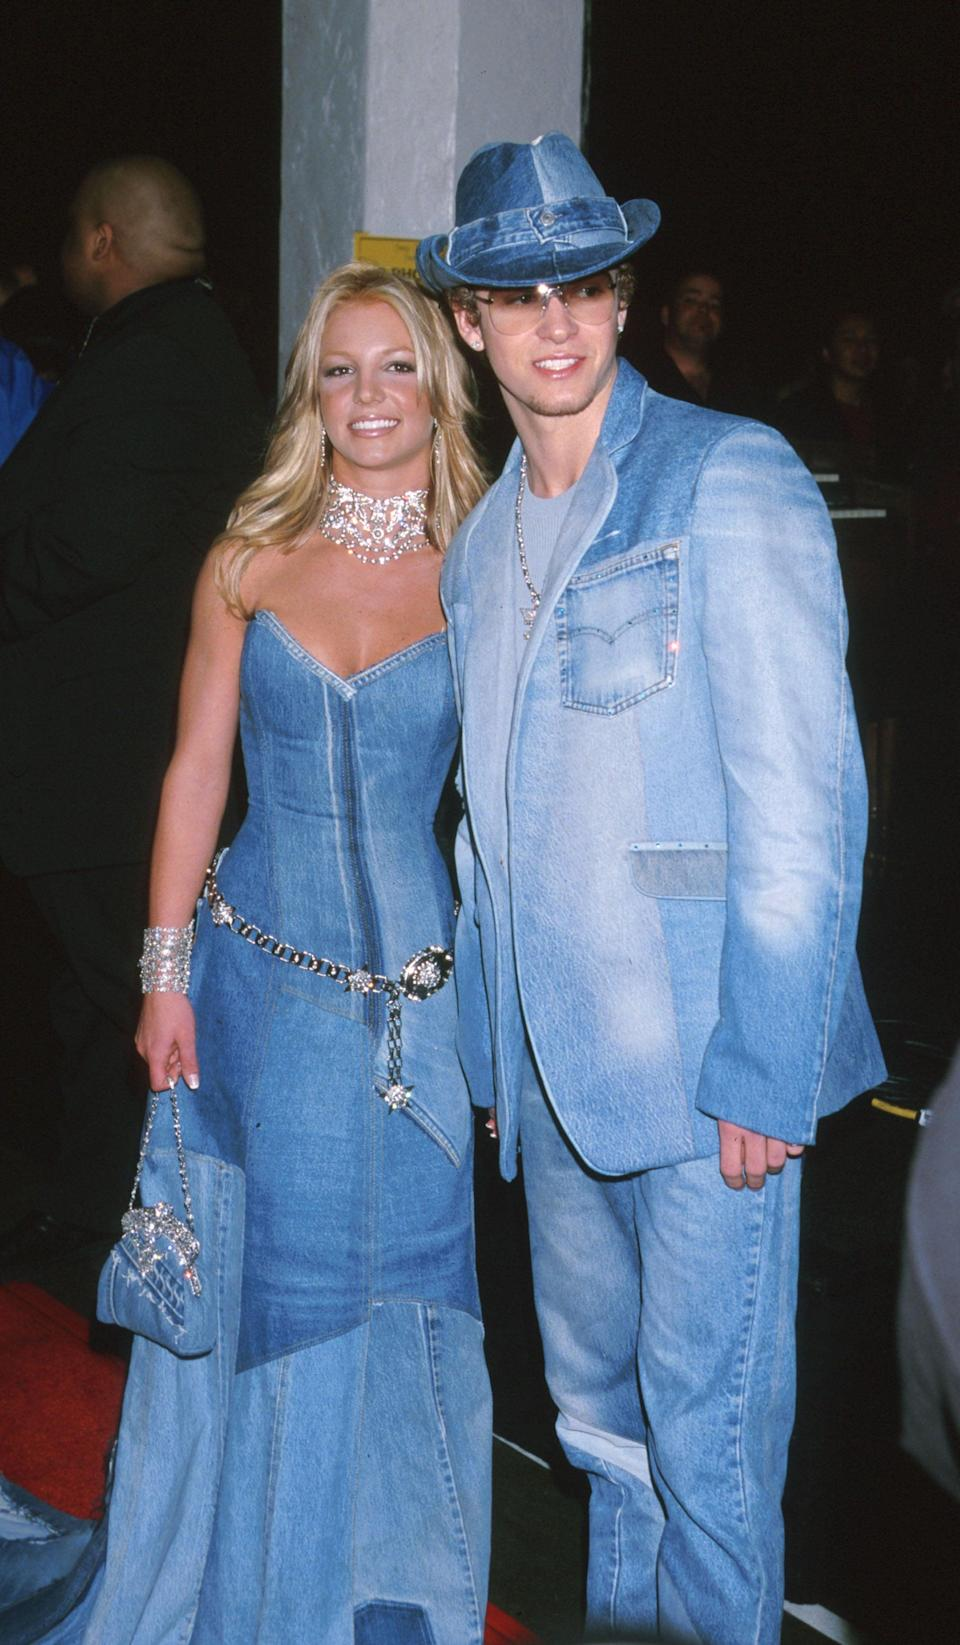 """<p>At the 2001 American Music Awards wearing matching denim outfits with <a class=""""link rapid-noclick-resp"""" href=""""https://www.popsugar.com/Justin-Timberlake"""" rel=""""nofollow noopener"""" target=""""_blank"""" data-ylk=""""slk:Justin Timberlake"""">Justin Timberlake</a>. </p>"""